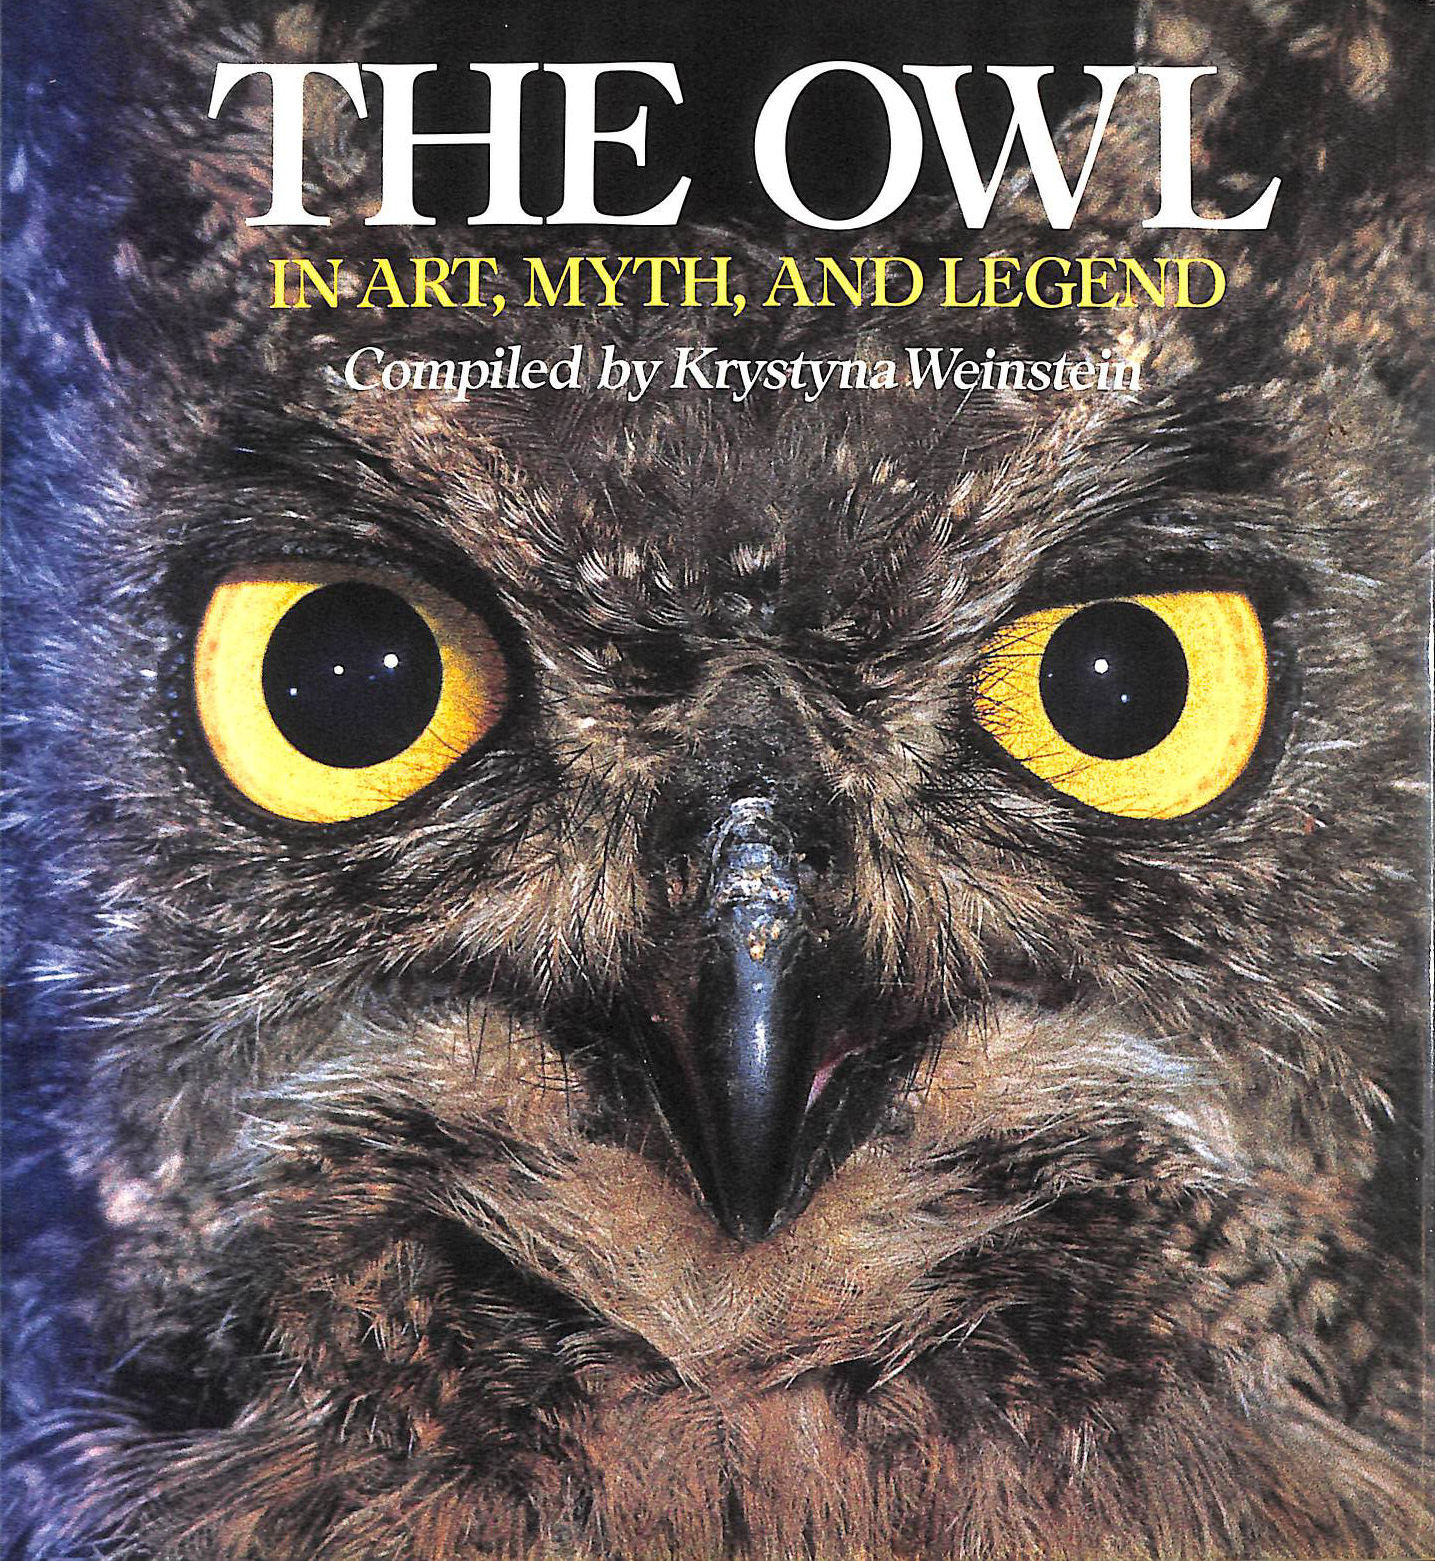 Image for The Owl in Art, Myth, and Legend